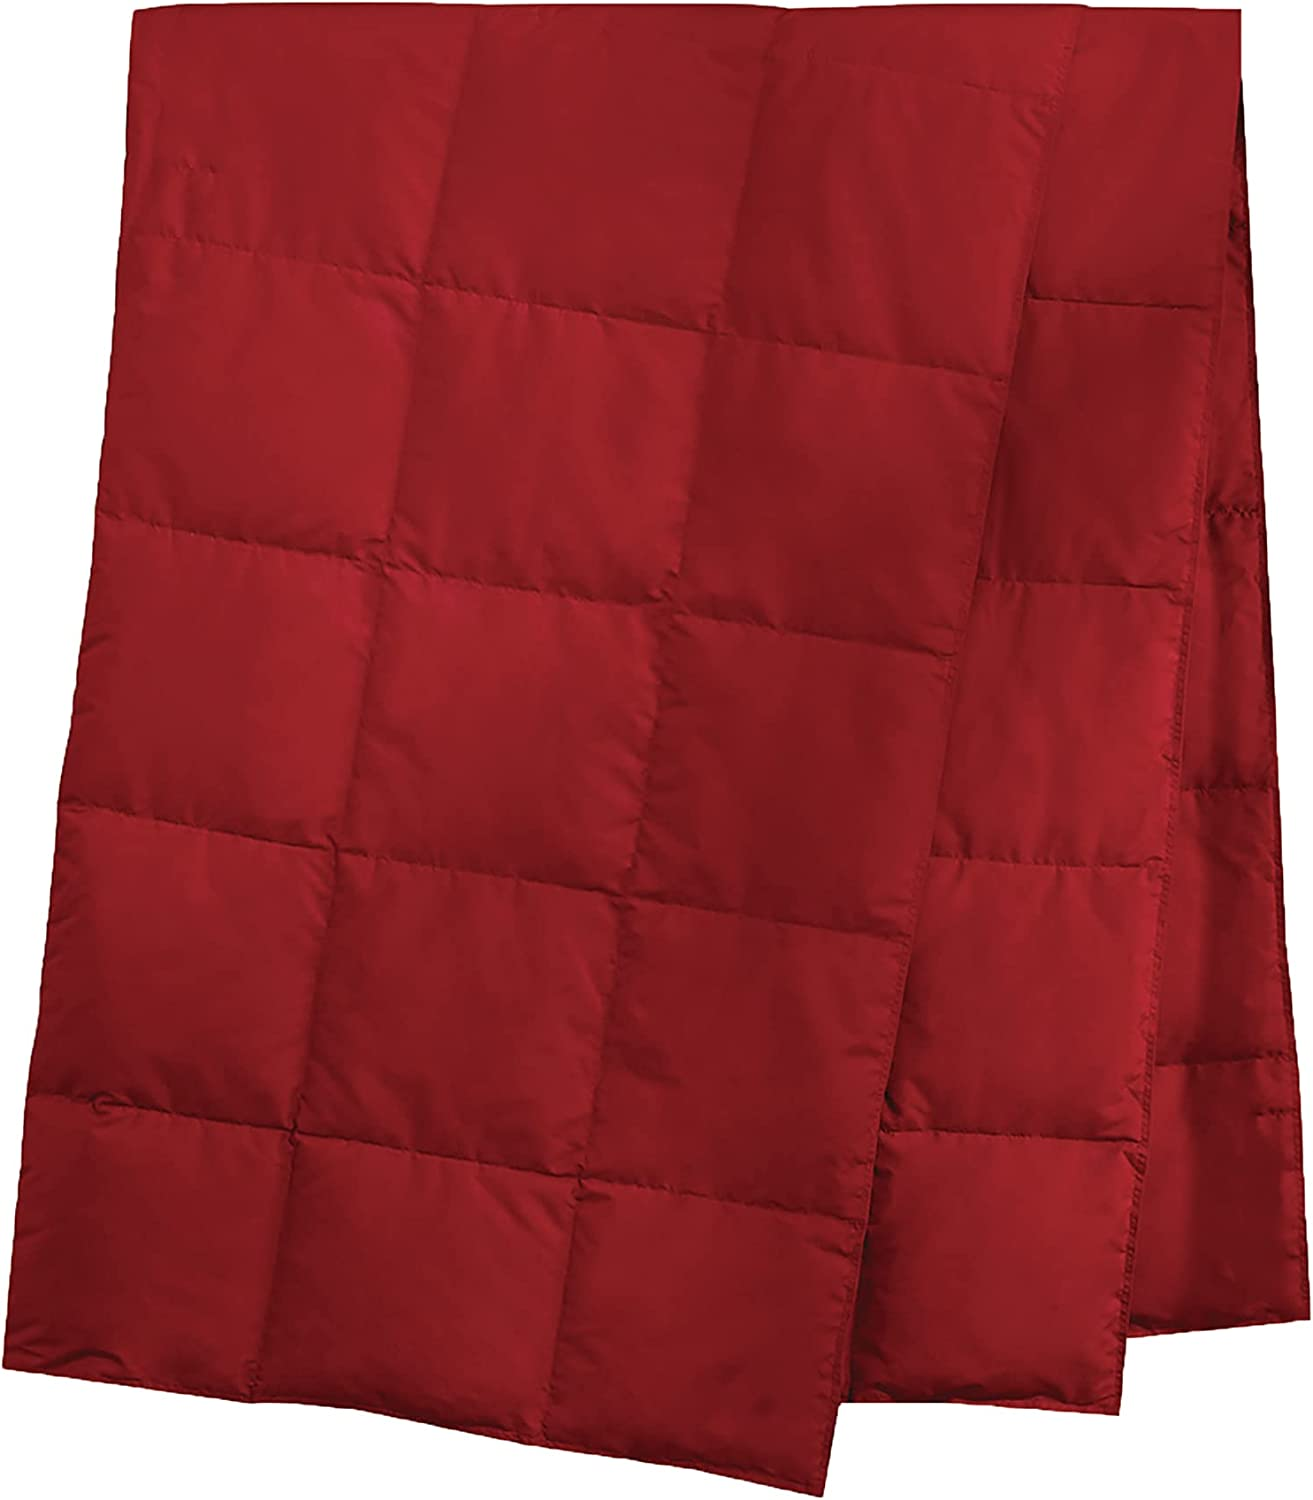 Lightweight Down Camping Blanket Packable Down Throw with Soft Peach Skin Fabric Navy 50 x 70